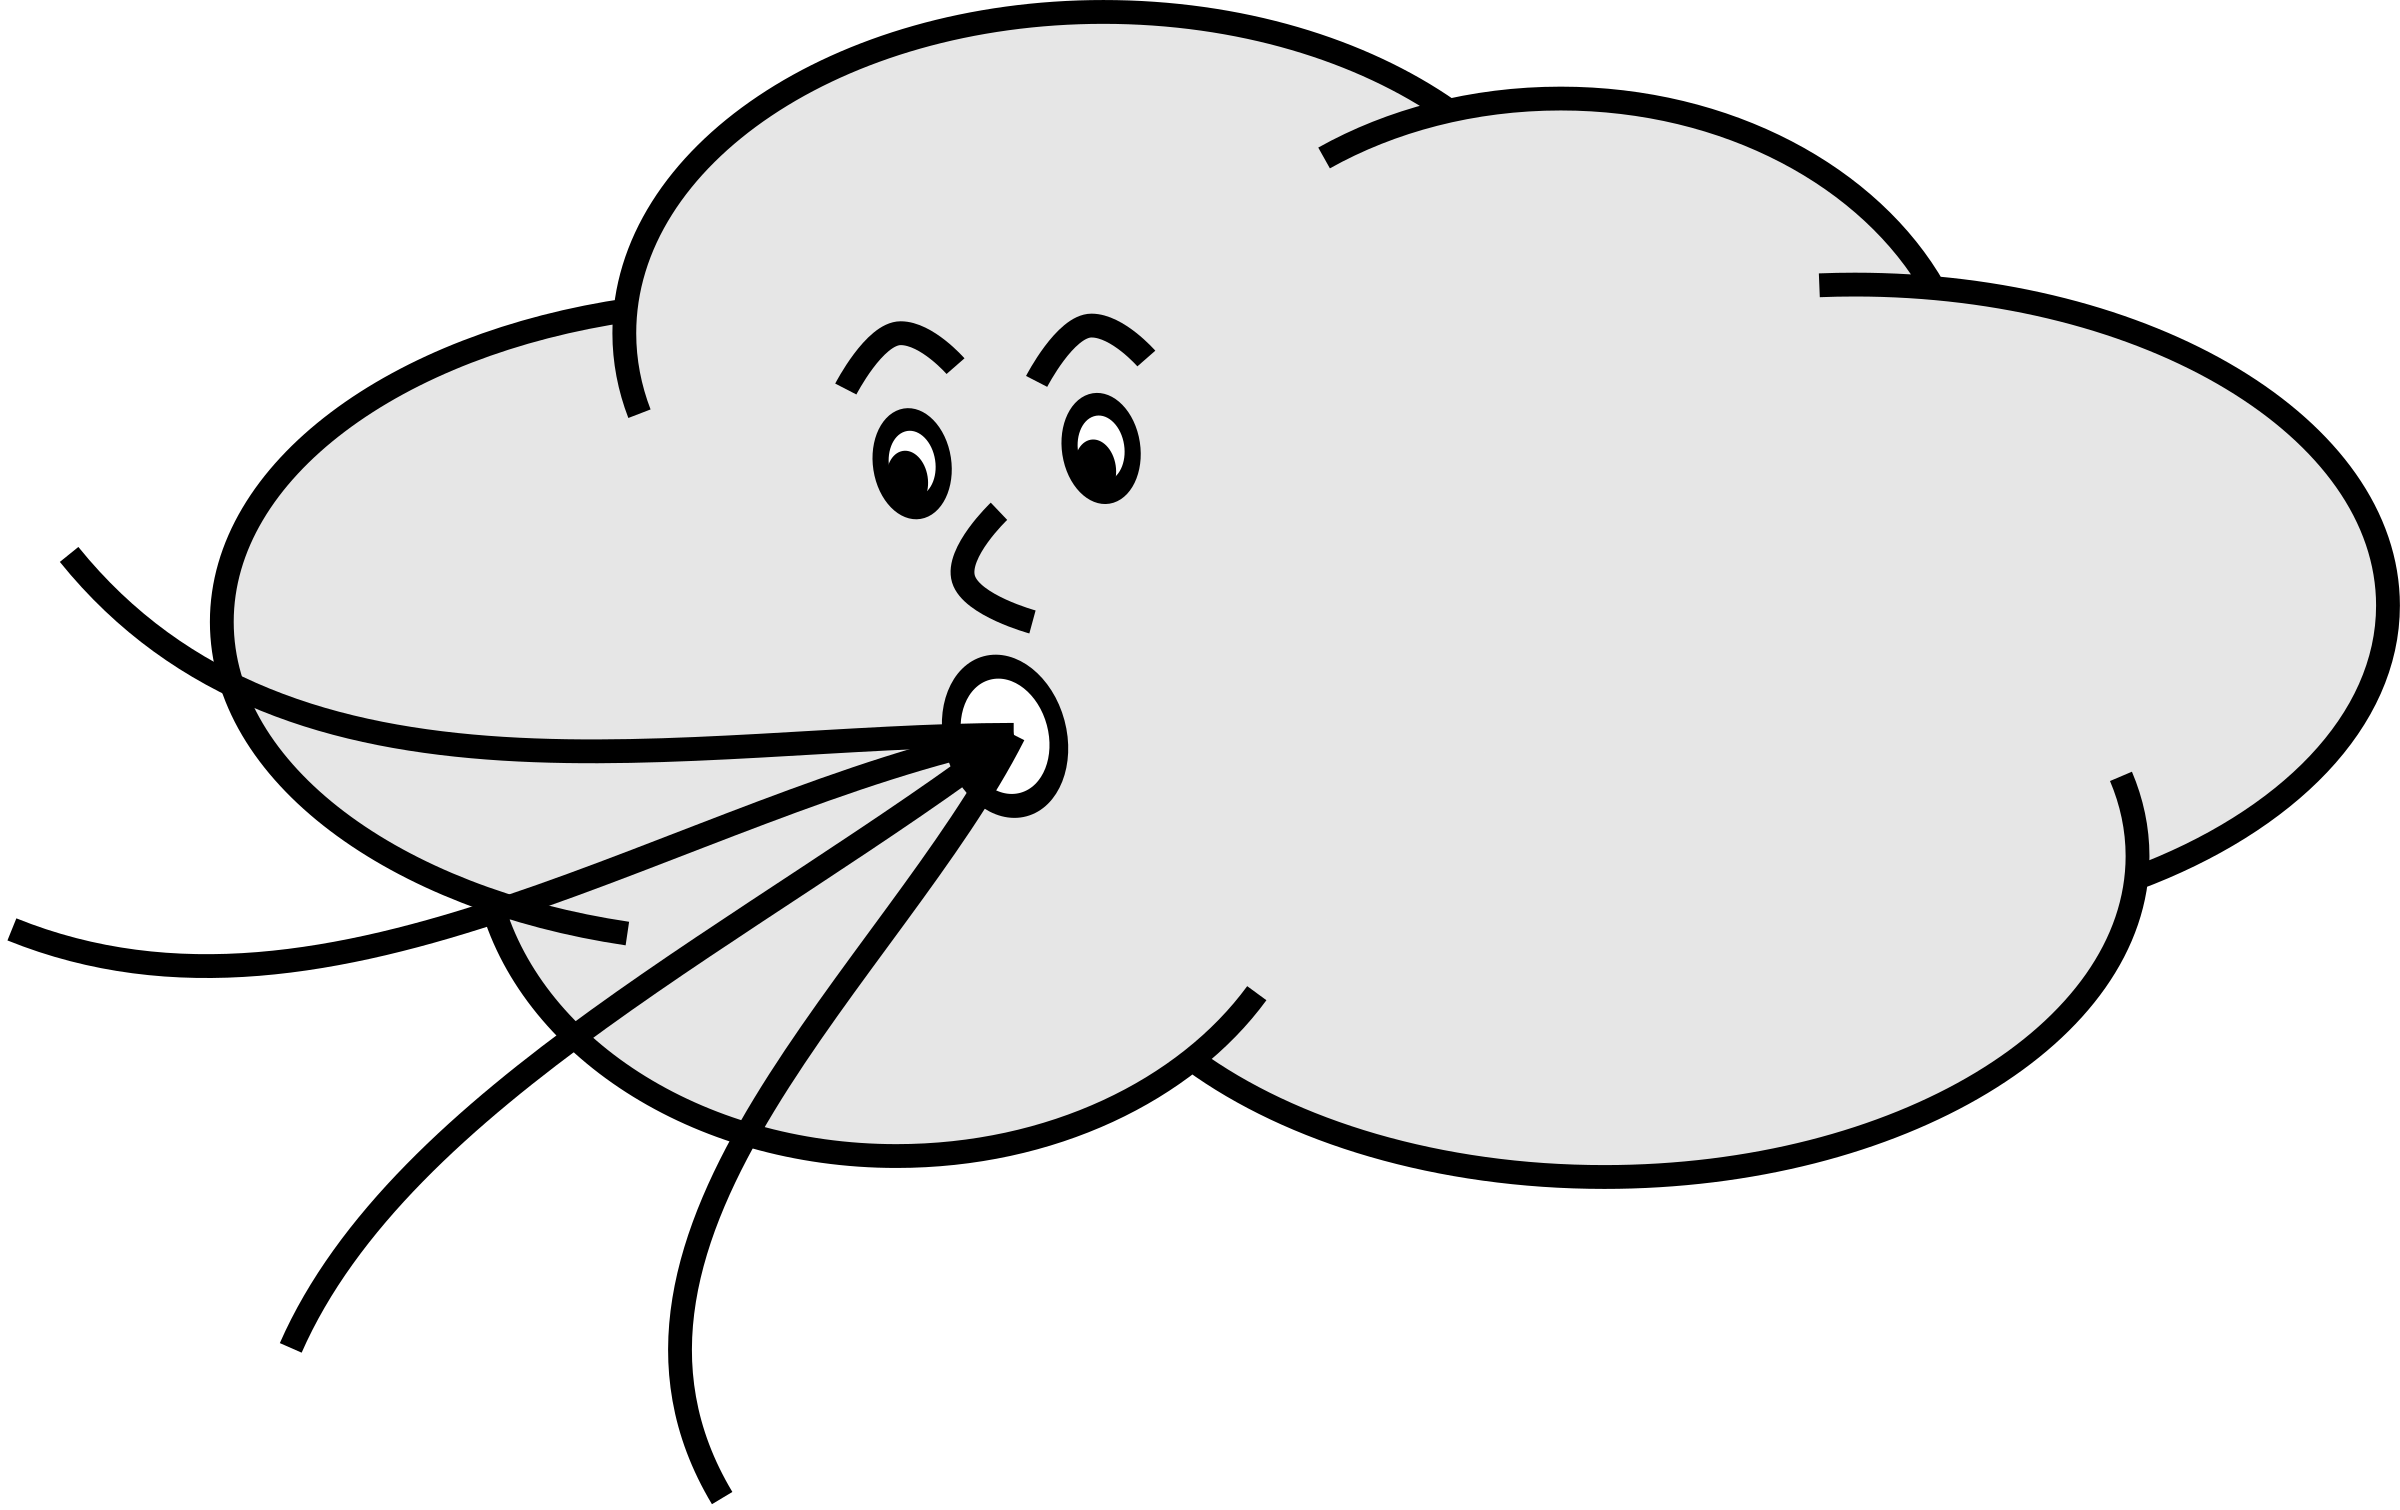 Cloud Blowing Wind Clip Art #cloudblowingwindclipart.